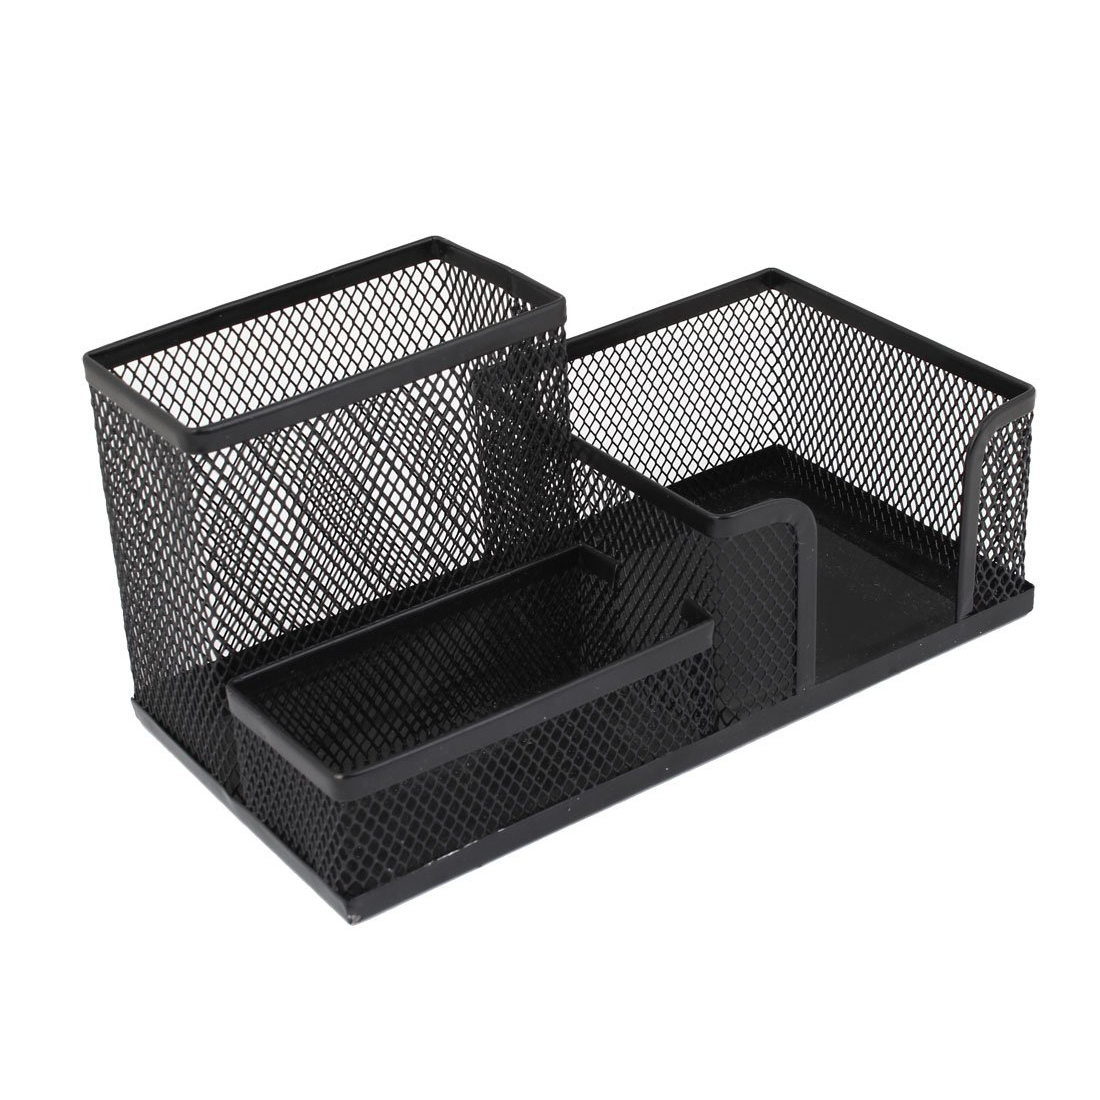 Black Cube Metal Stand Mesh Style Pen Pencil Ruler Holder Desk Organizer Storage